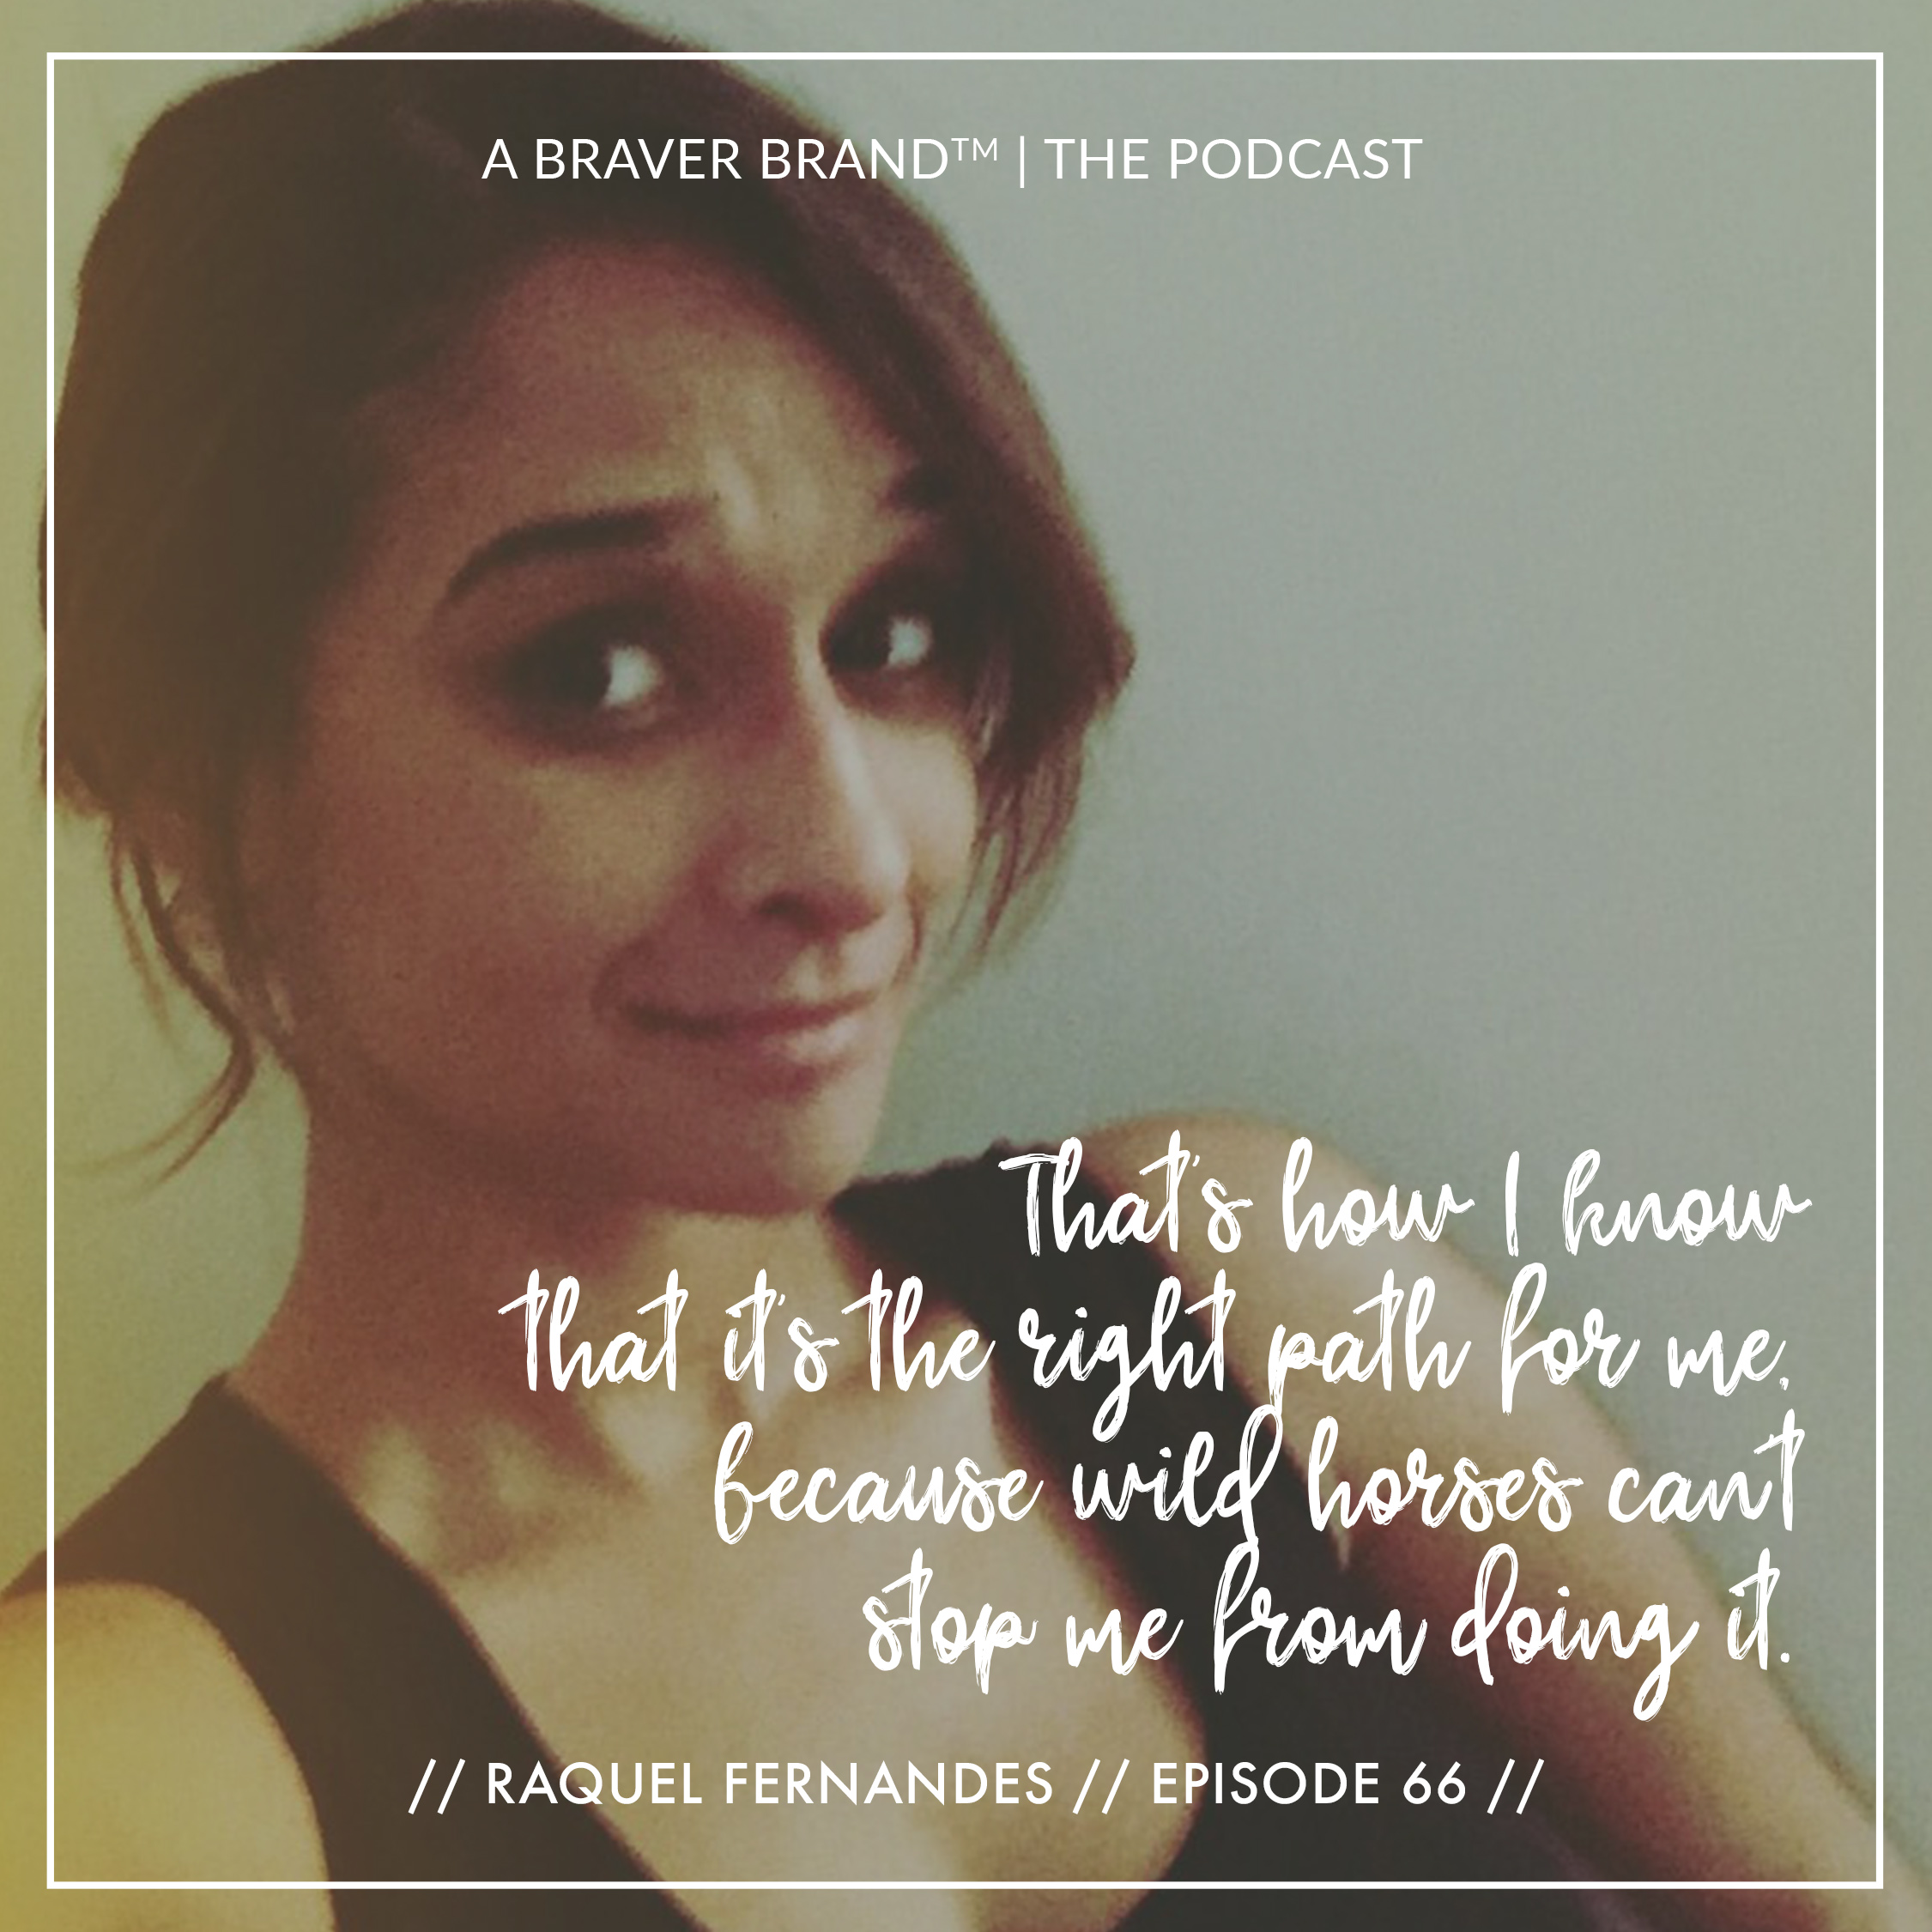 Raquel Fernandes on Soul Work & Starting Something New | A Braver Brand with Kate K. McCarthy